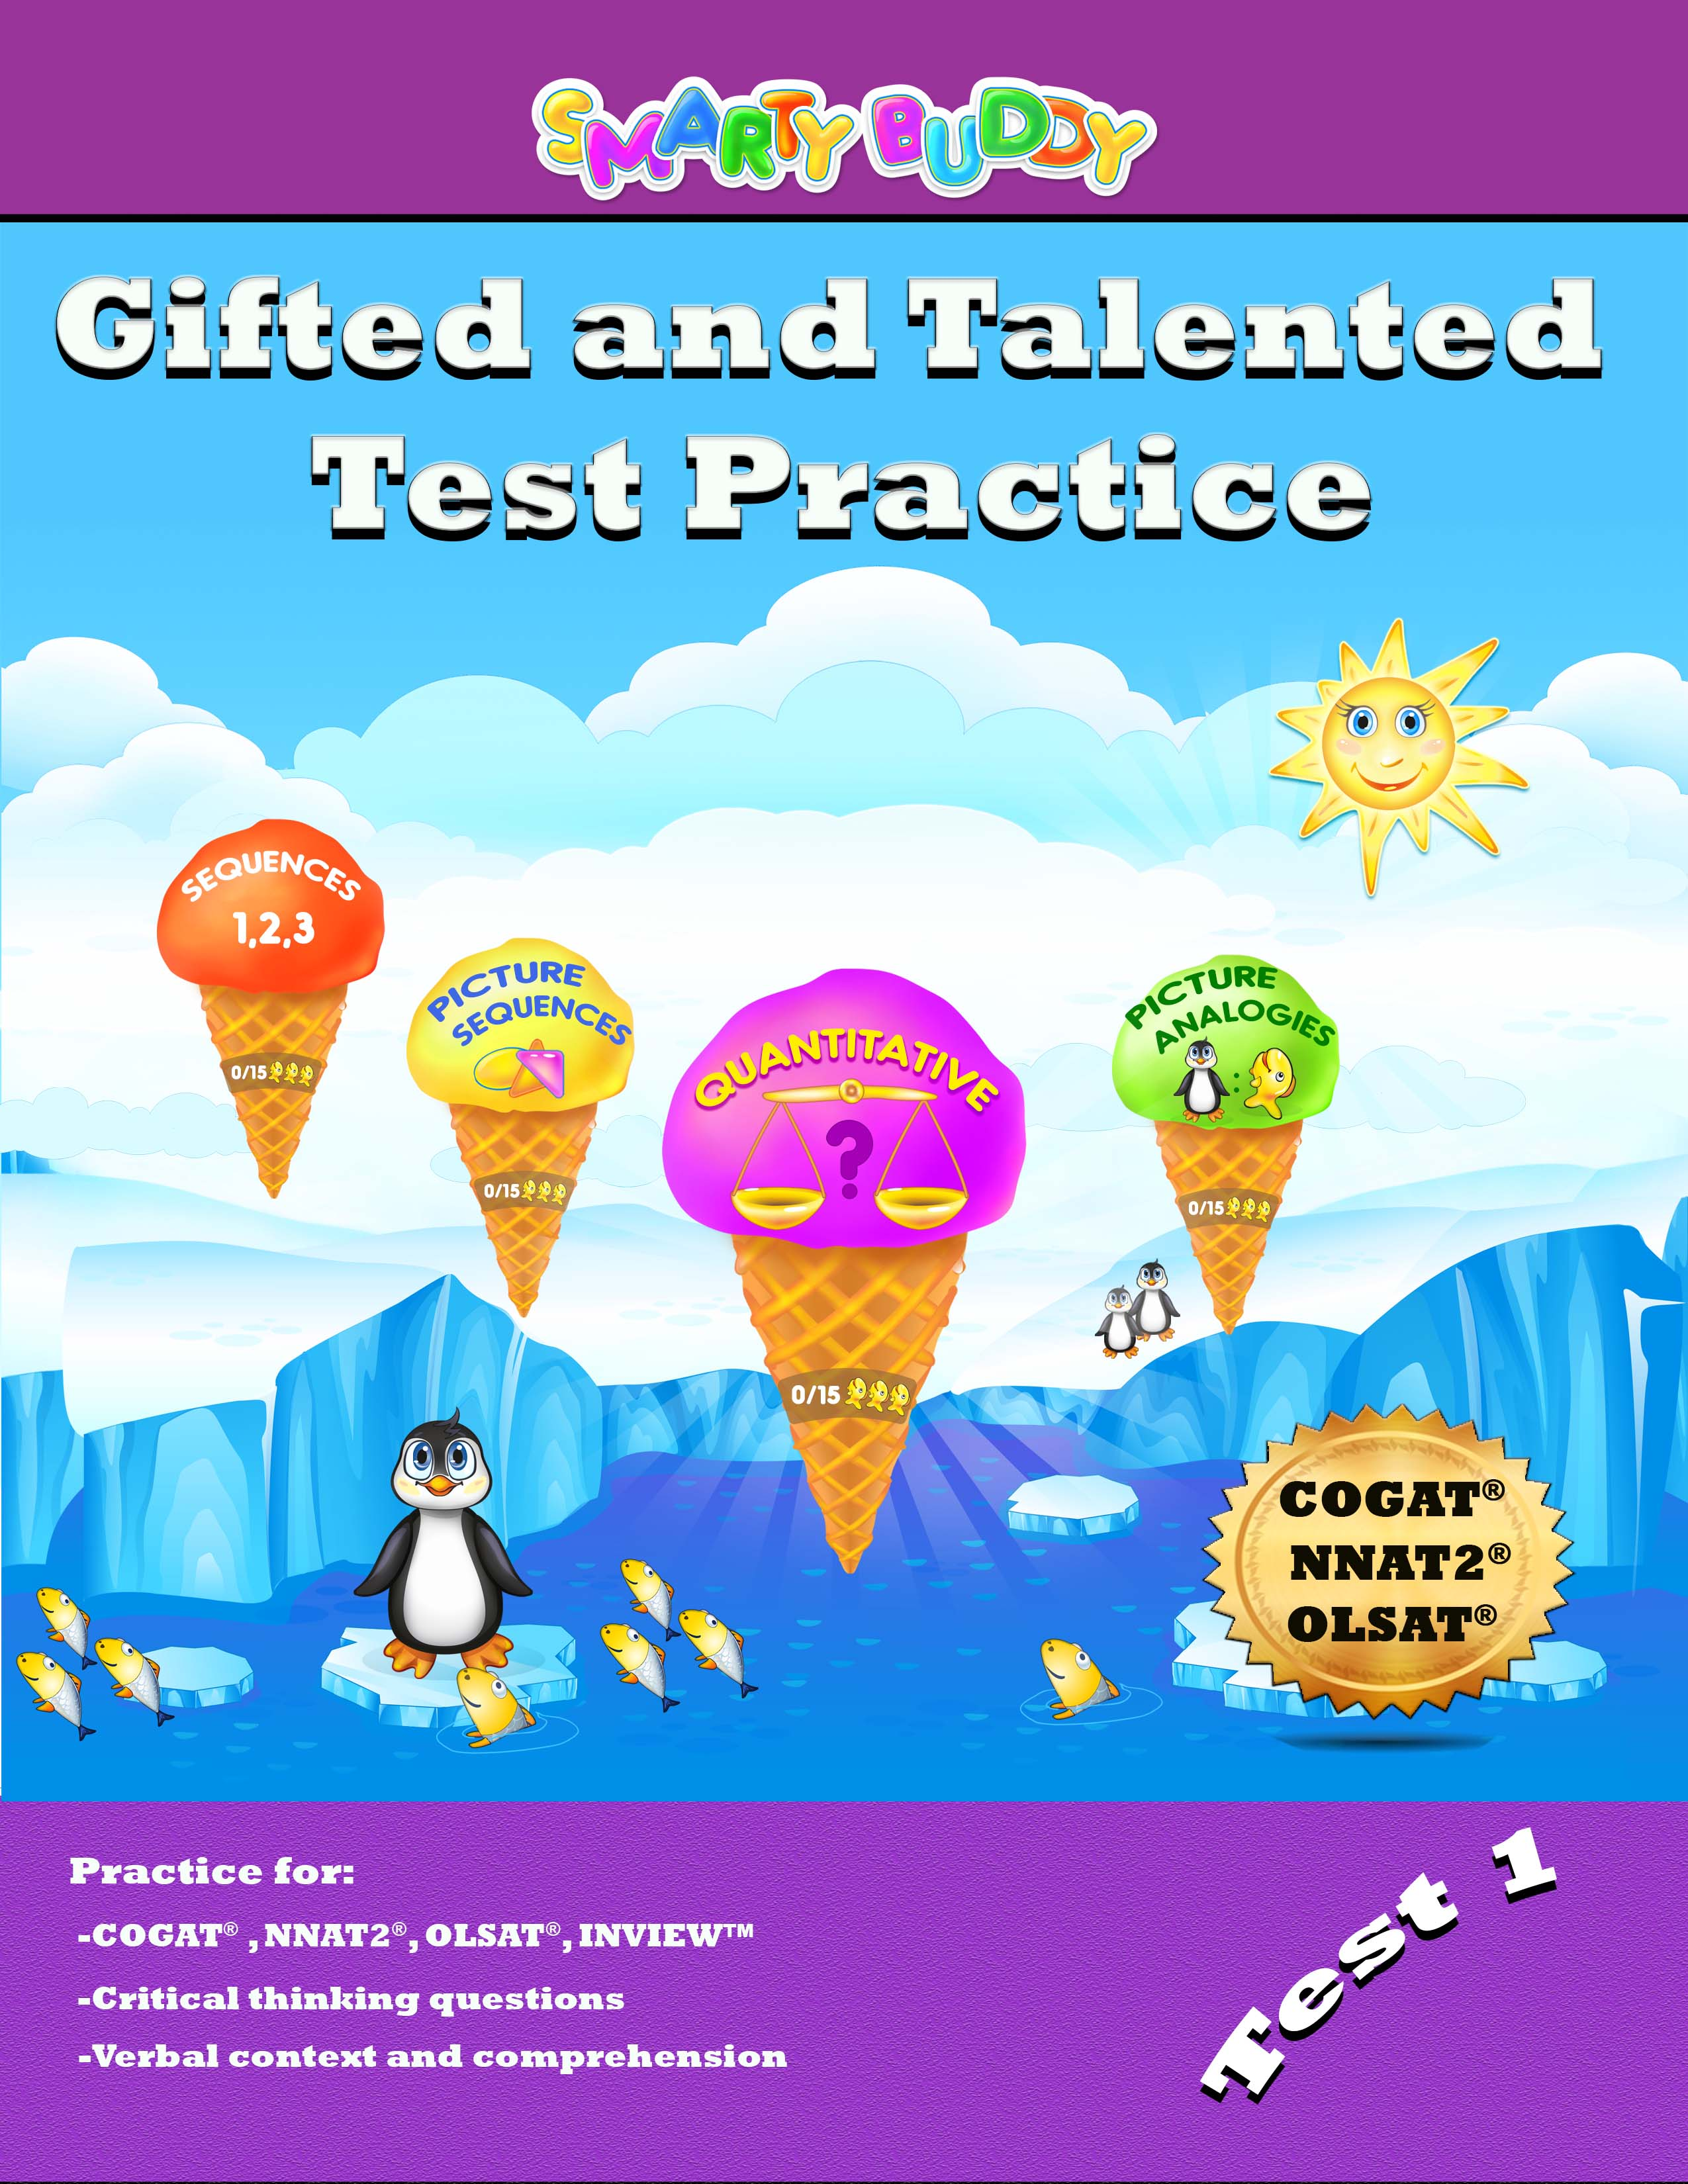 Smarty Buddy Ted And Talented Practice